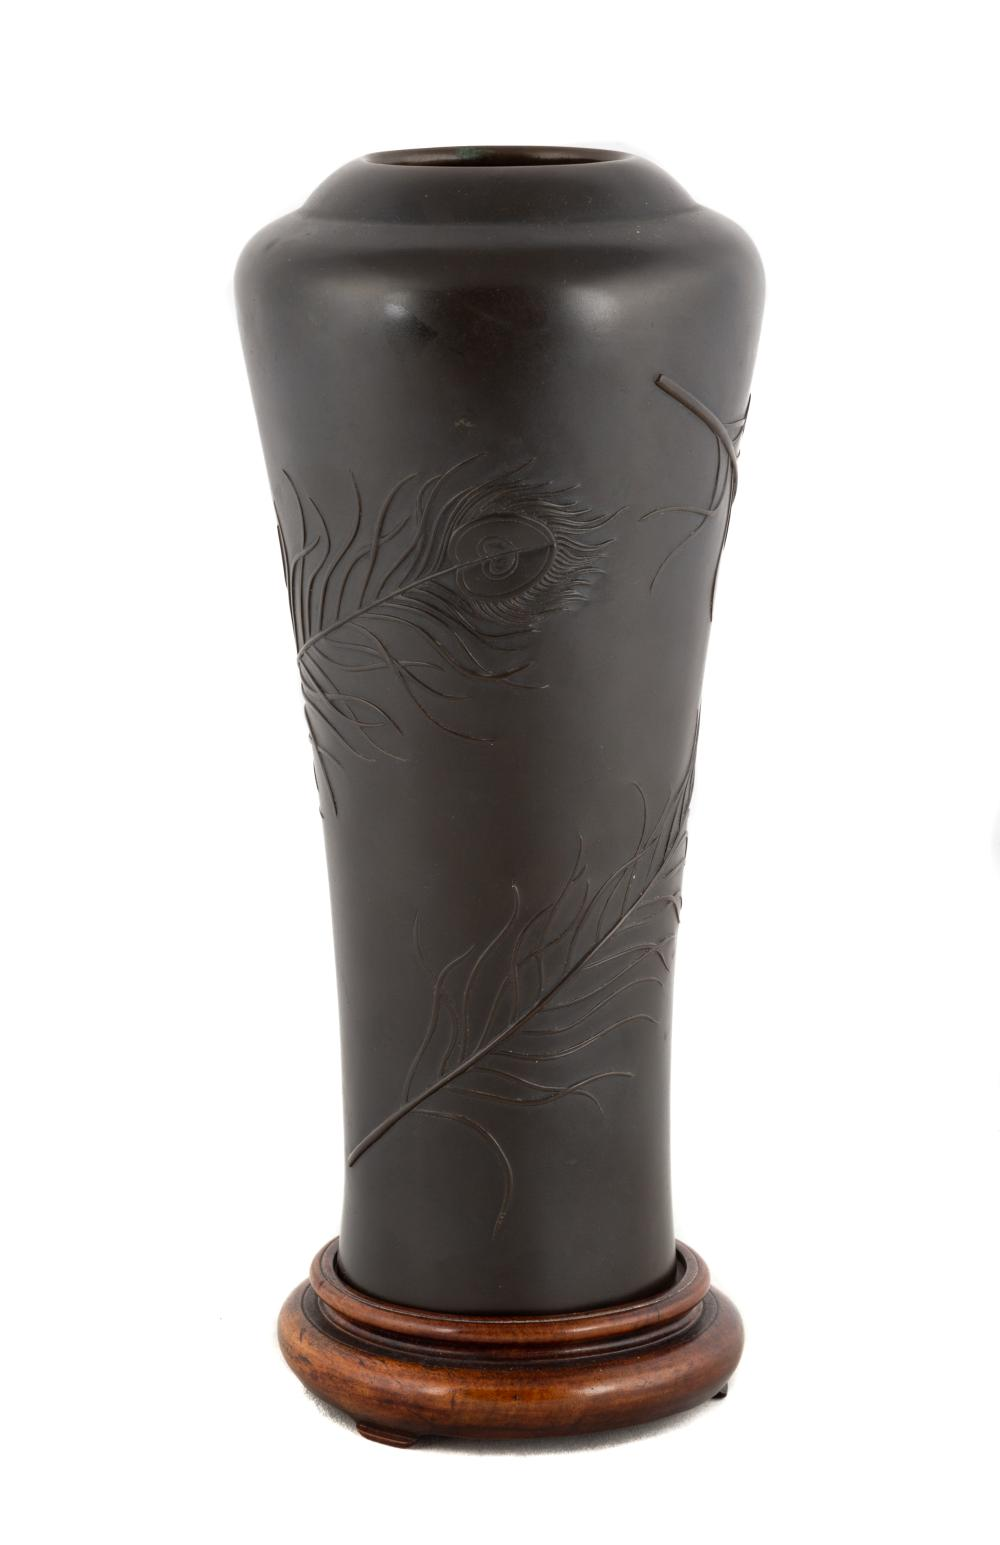 Japanese Bronze Vase with Peacock Feathers